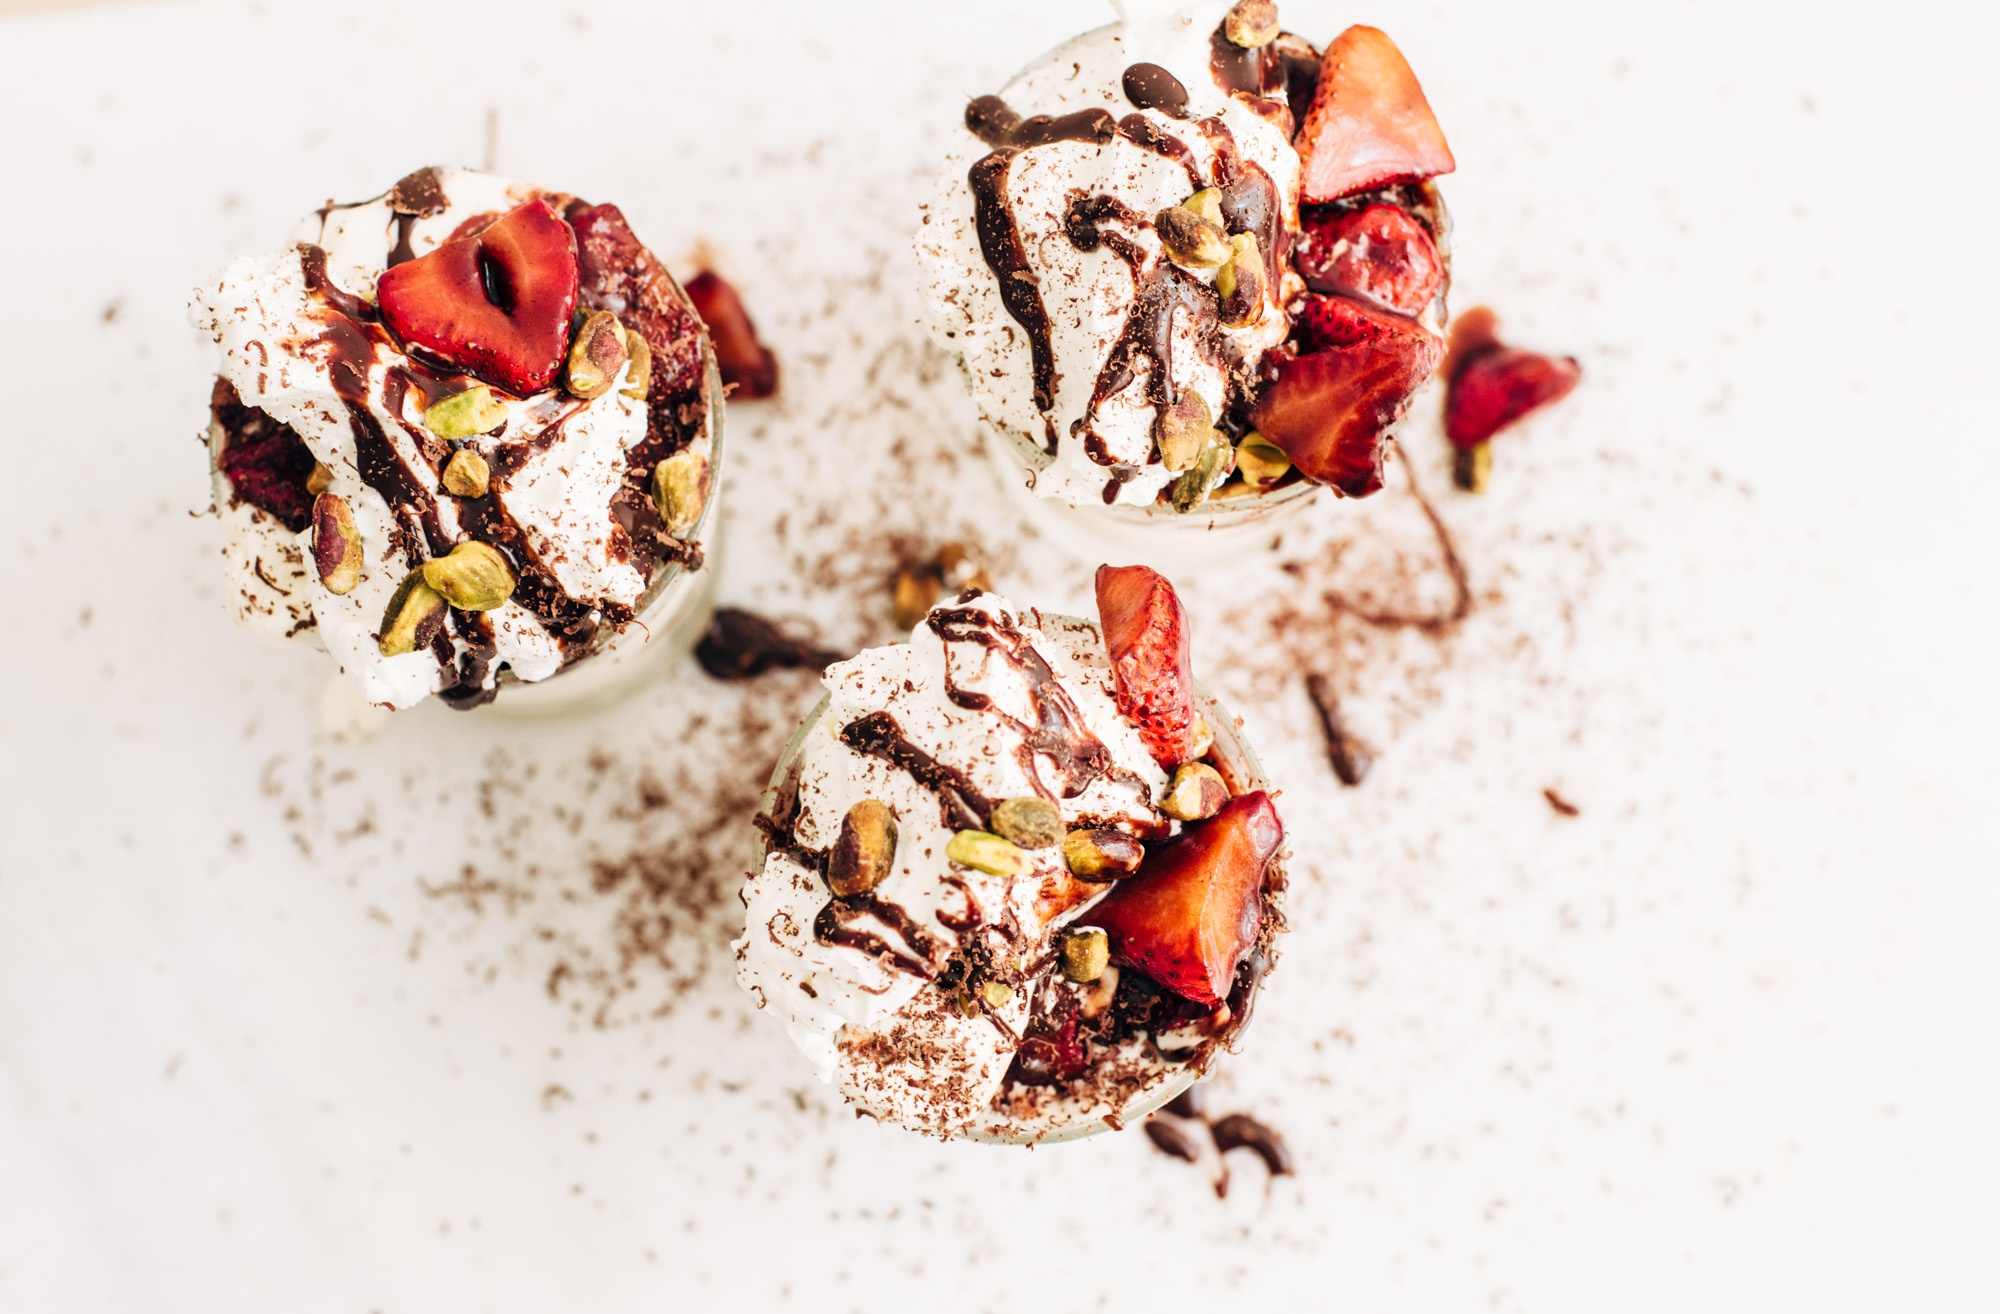 Balsamic Strawberry Sundae with Homemade Whipped Cream, Chocolate Sauce and Roasted Pistachios